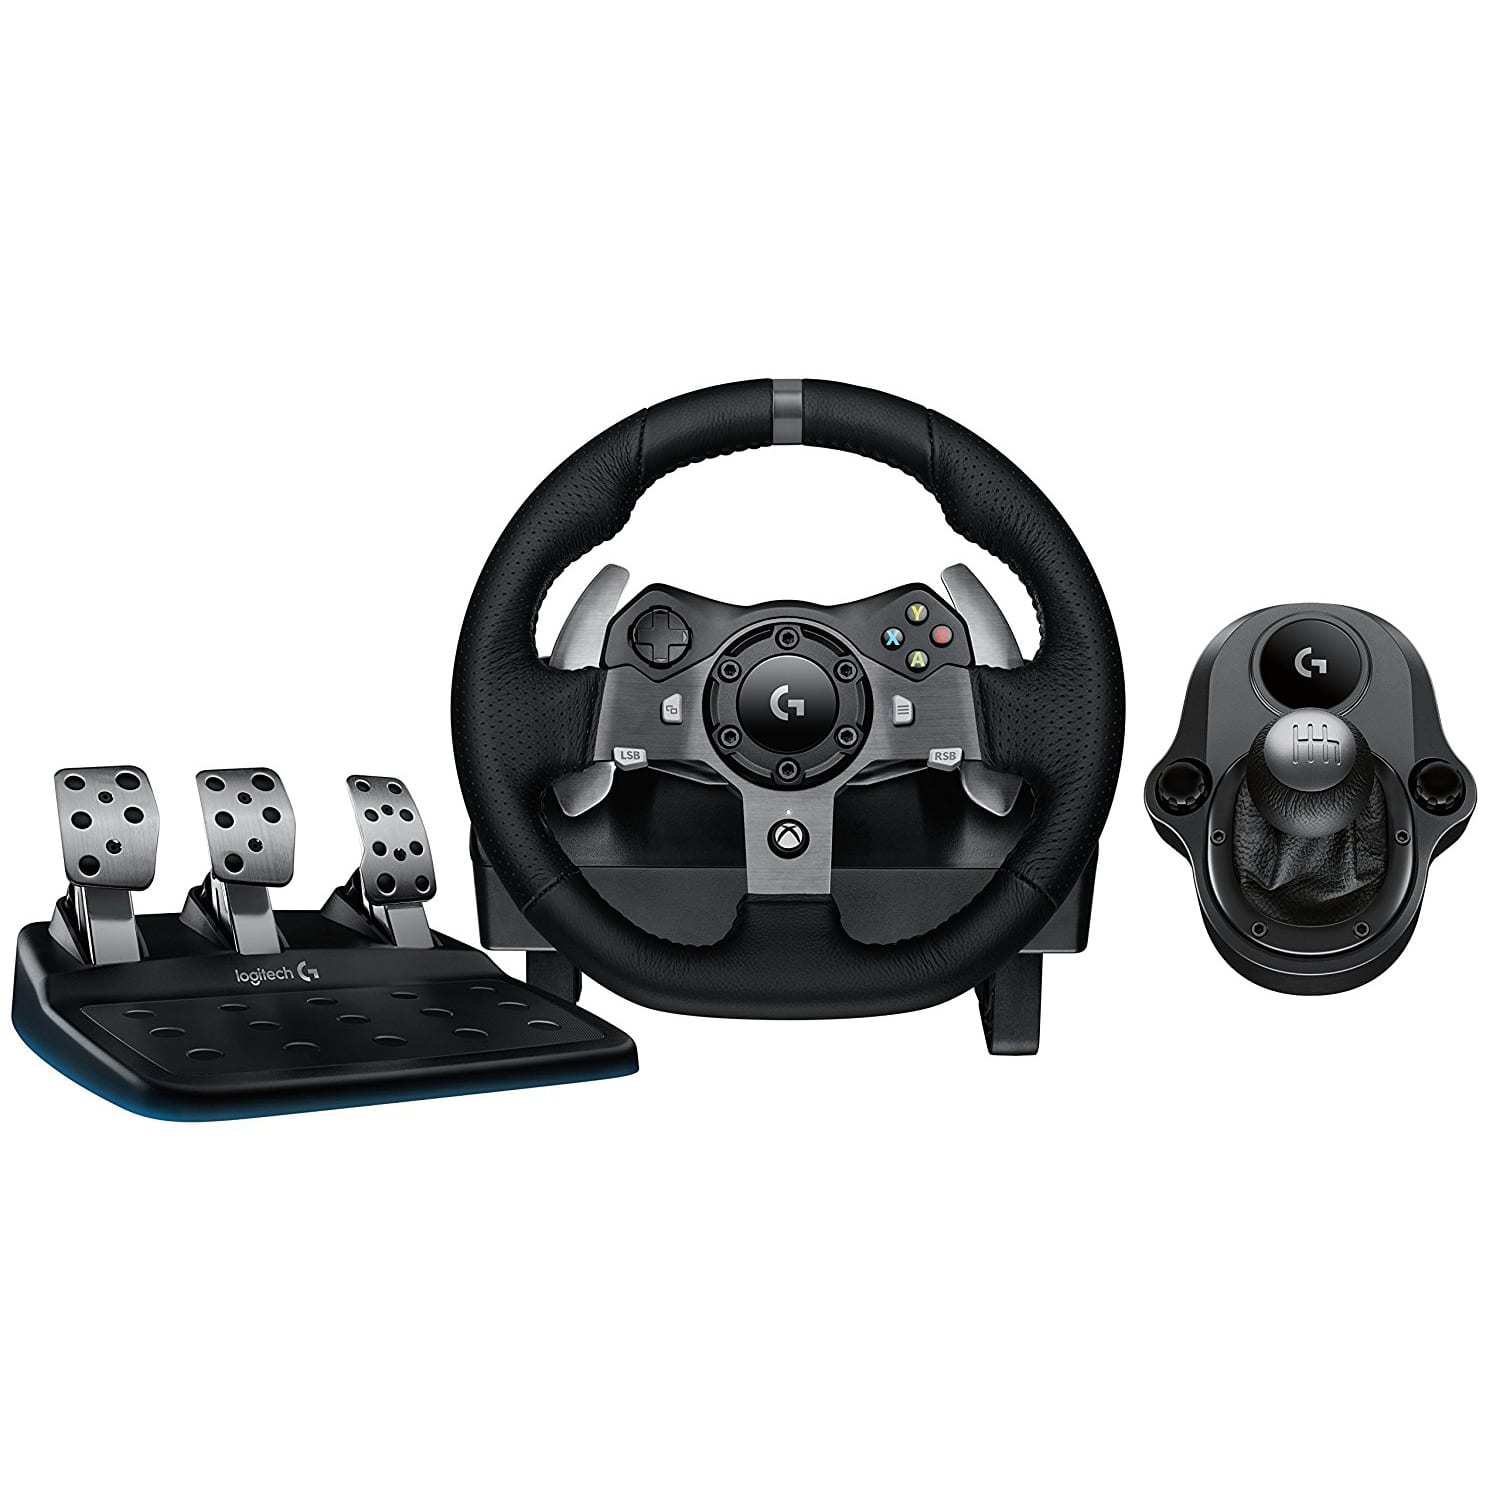 Logitech G920 [PC,,Xbox] Driving Force Racing Wheel + Pedals + G-Force Shifter Bundle - $229.93 + Free Shipping